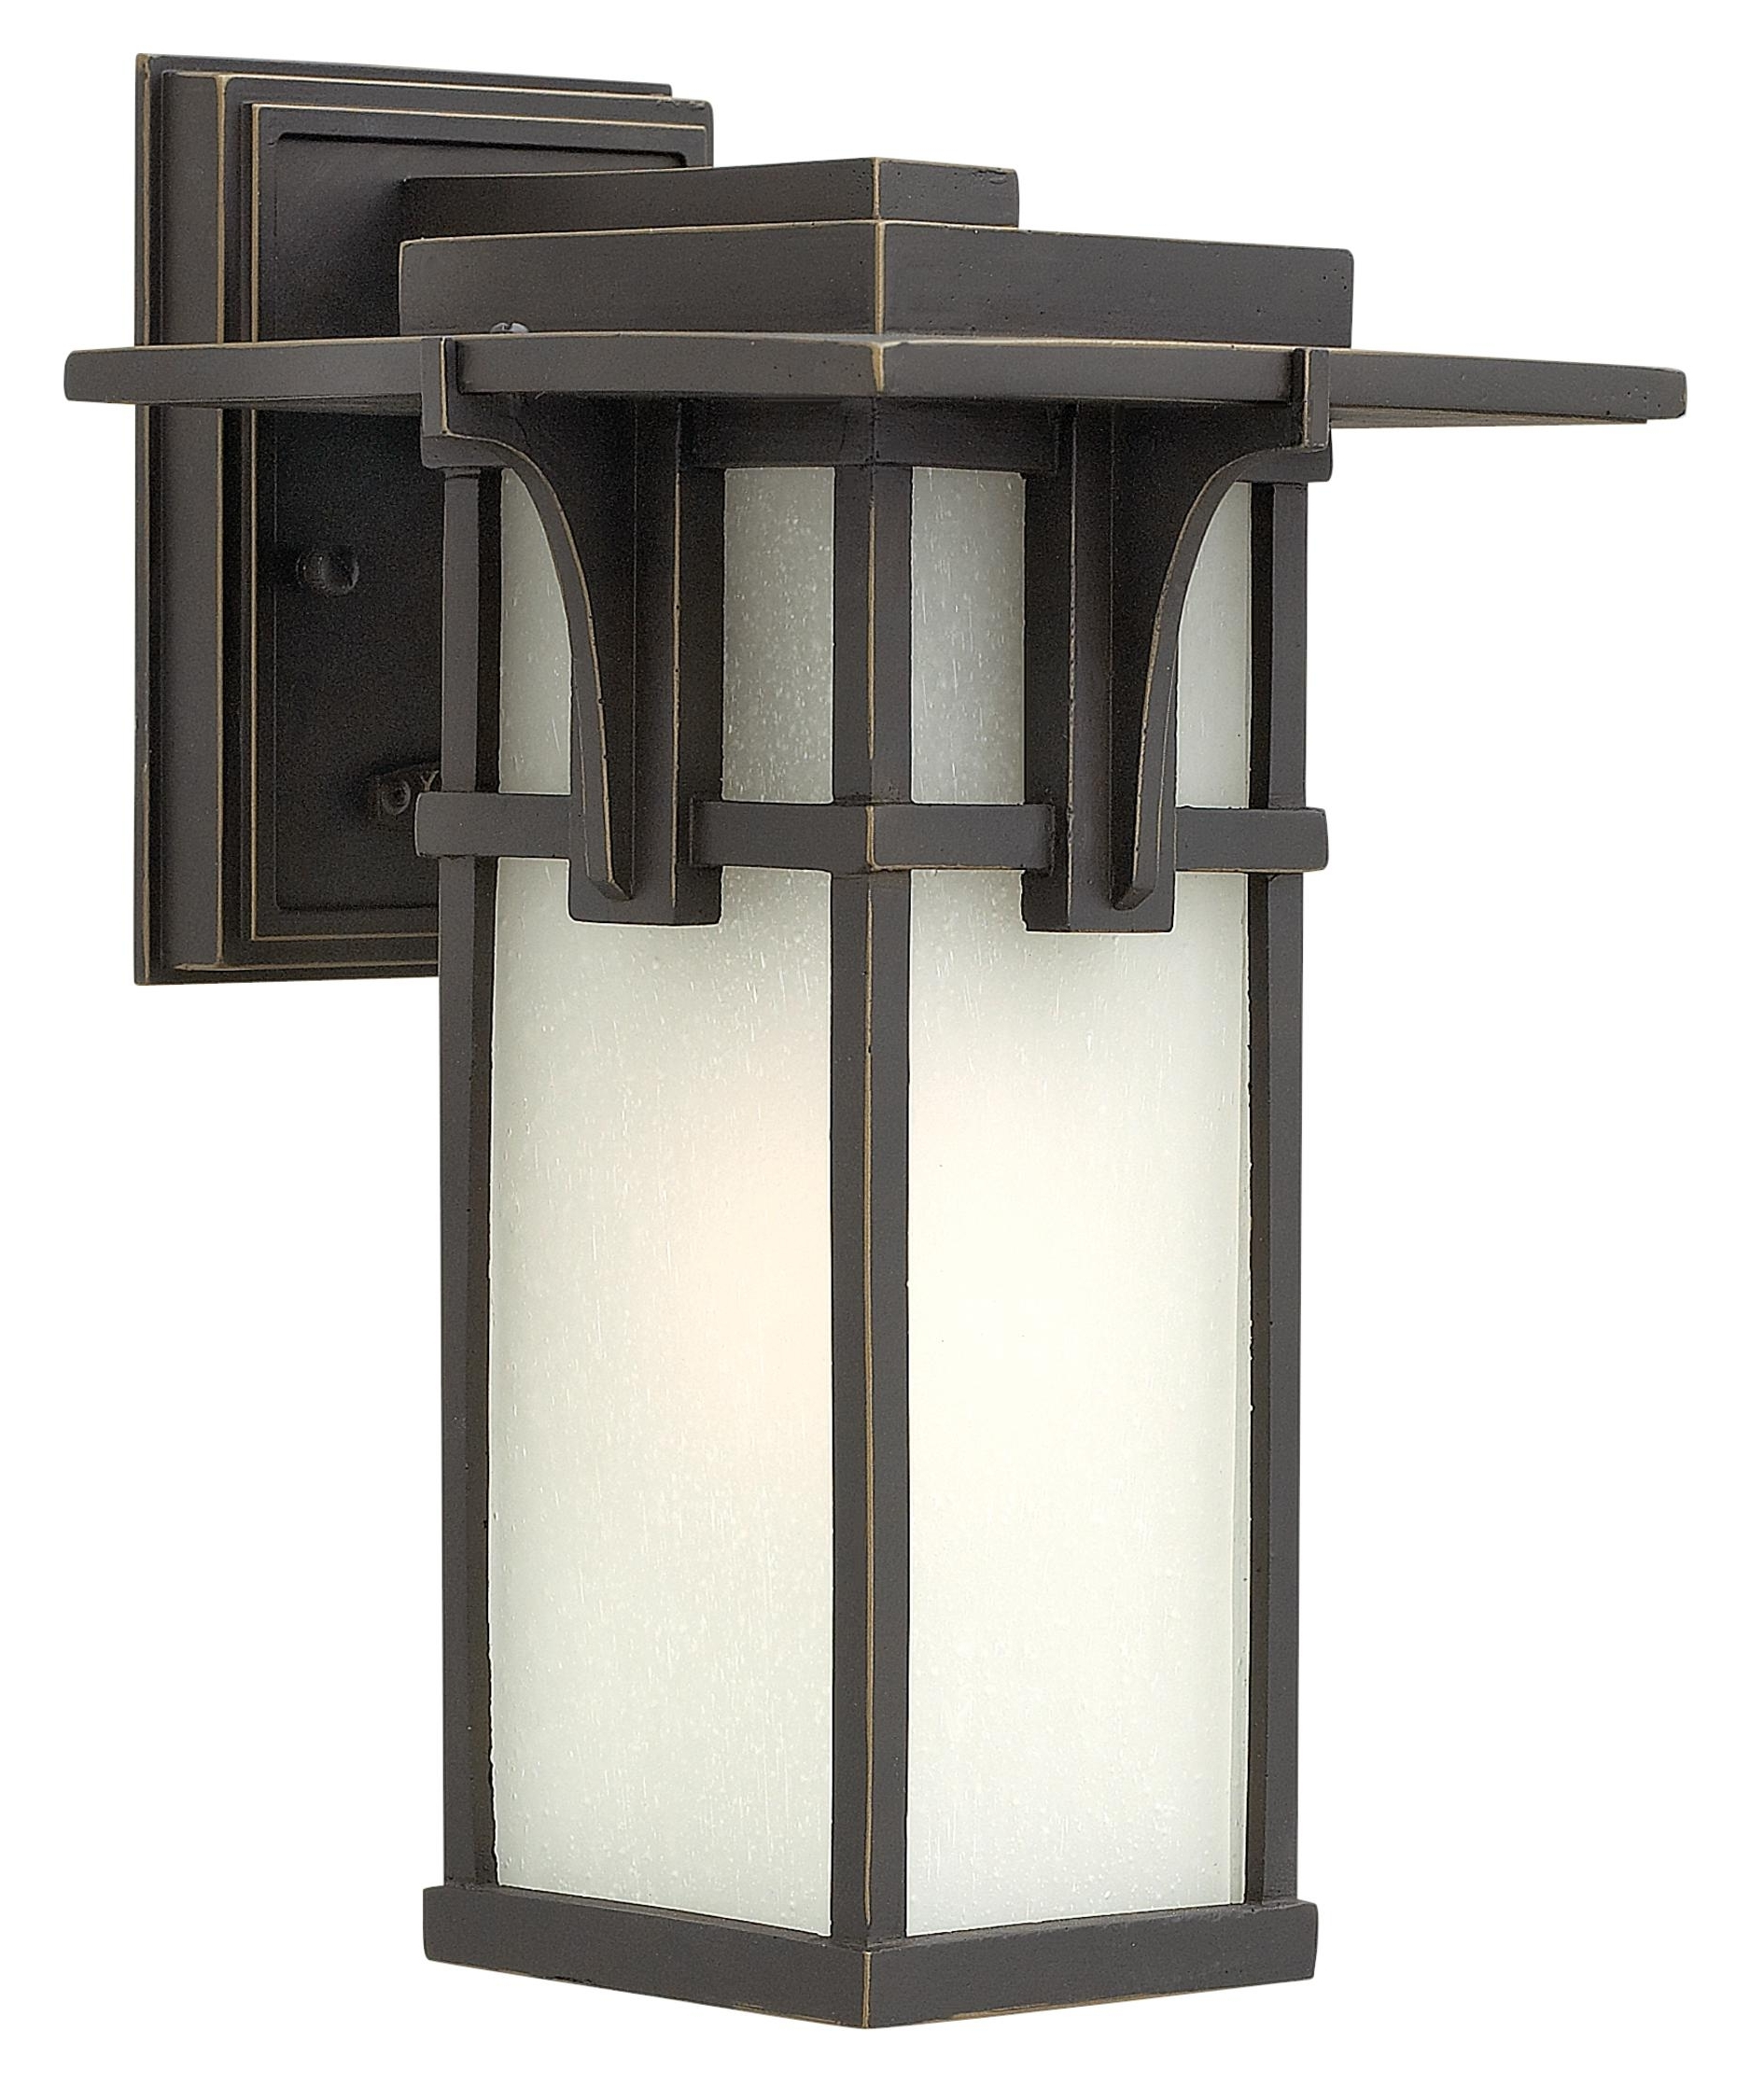 High End Outdoor Wall Lighting In Well Known Hinkley Lighting 2230 Manhattan 7 Inch Wide 1 Light Outdoor Wall (View 9 of 20)